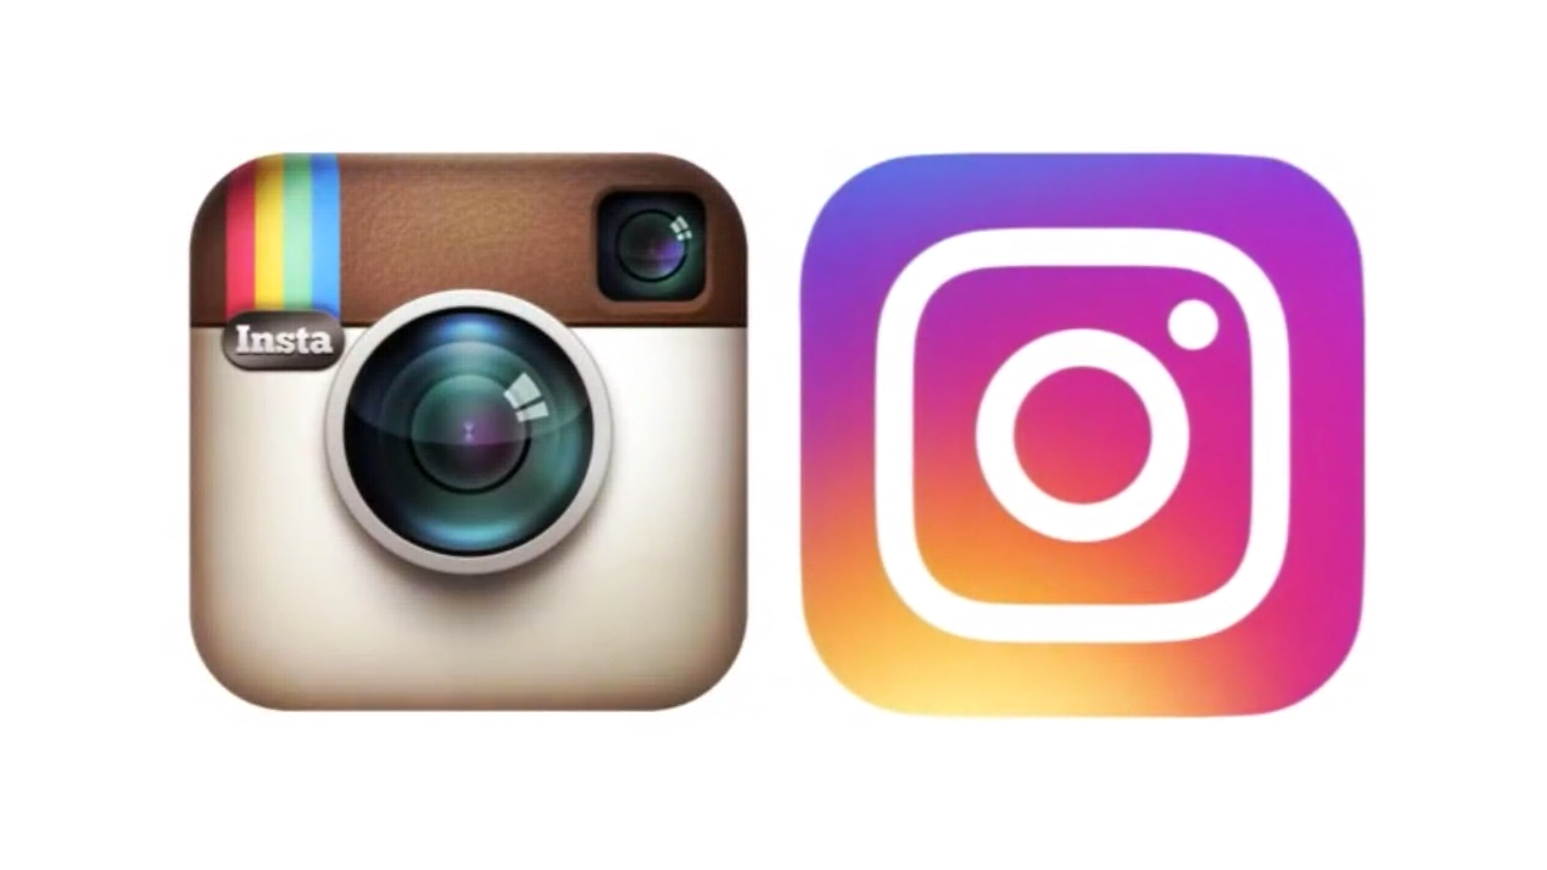 The old instagram on the left, and the new on the right